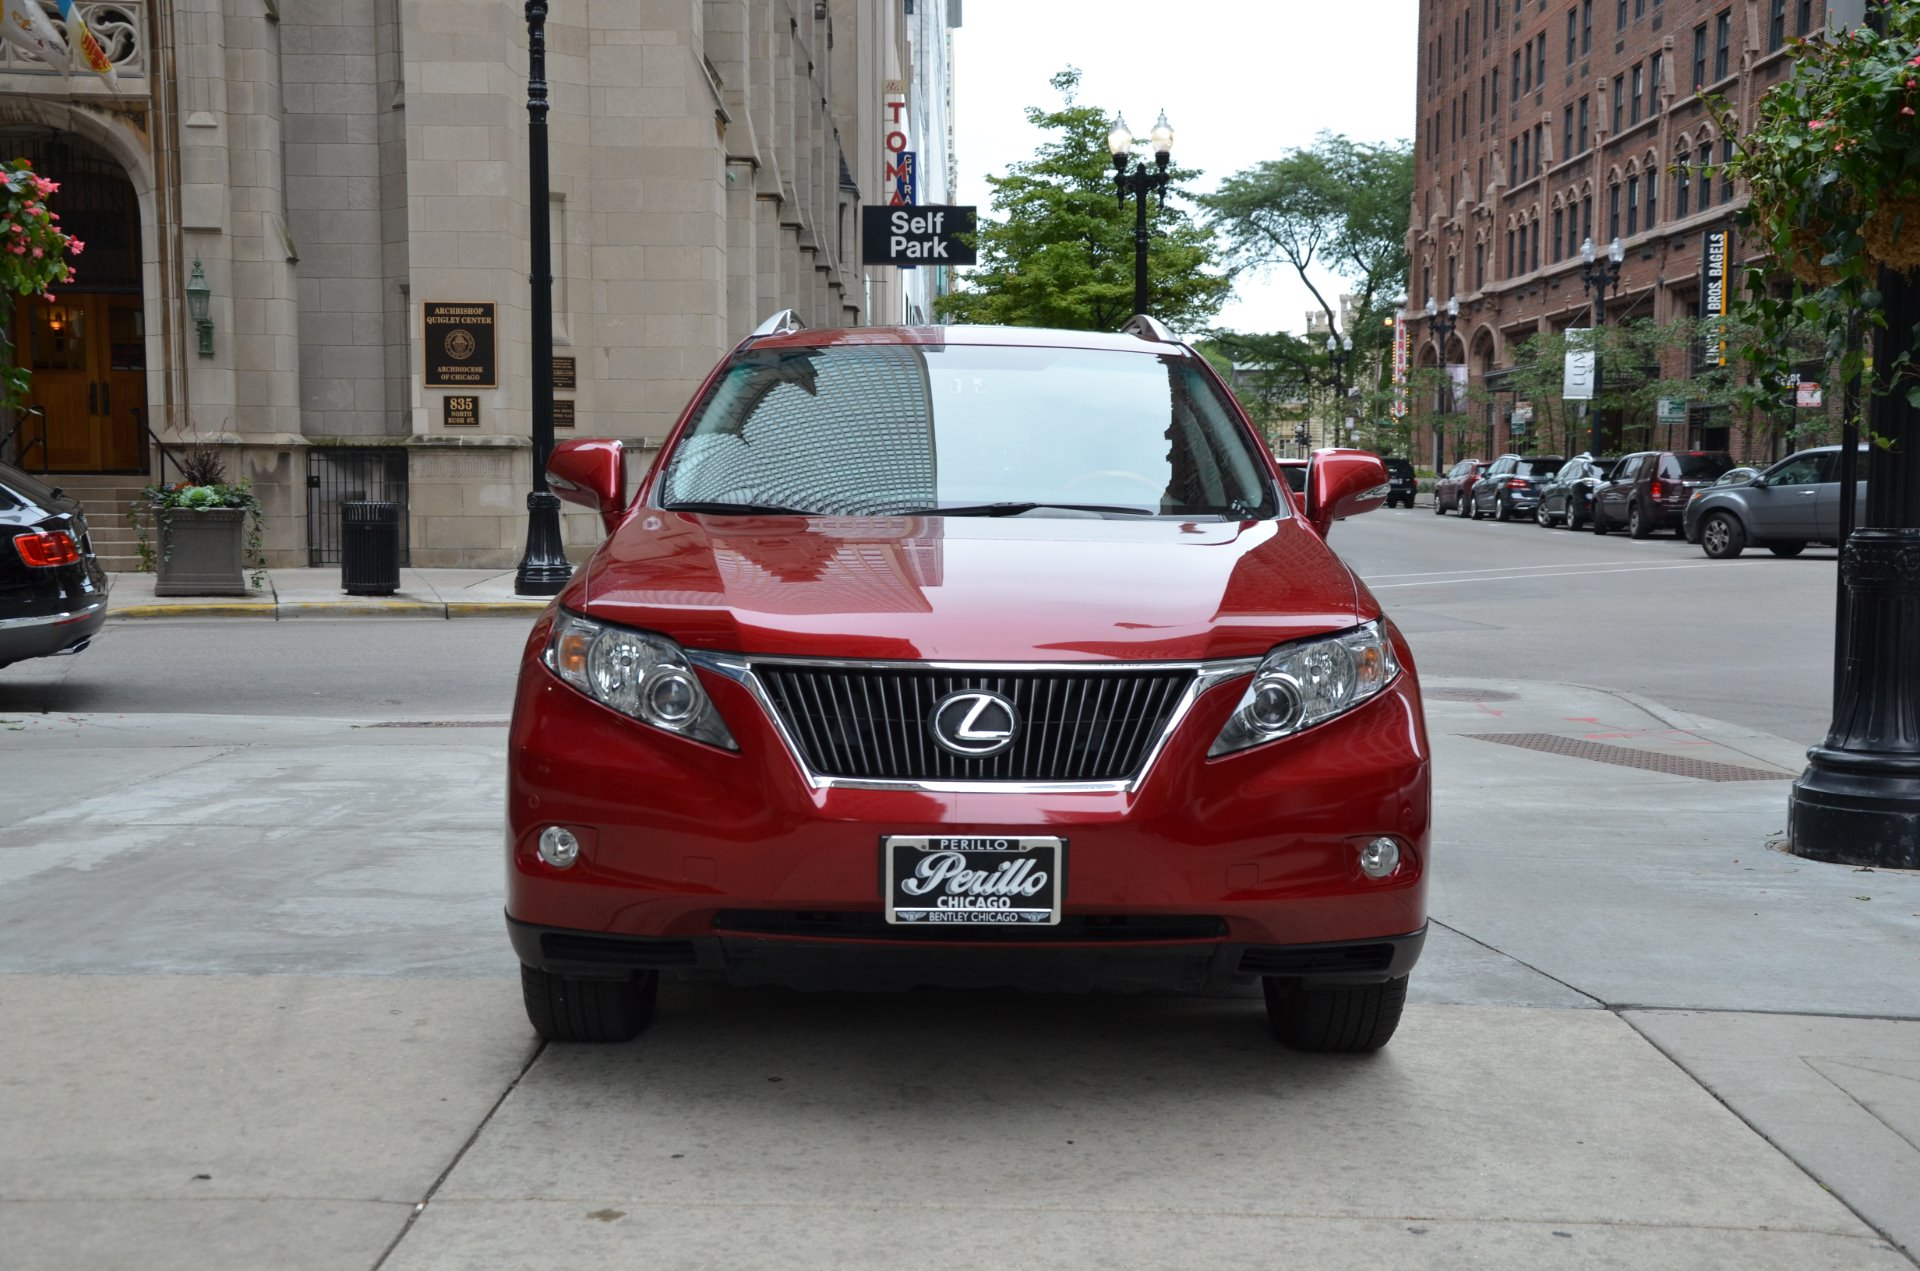 2012 lexus rx 350 stock m526a for sale near chicago il. Black Bedroom Furniture Sets. Home Design Ideas